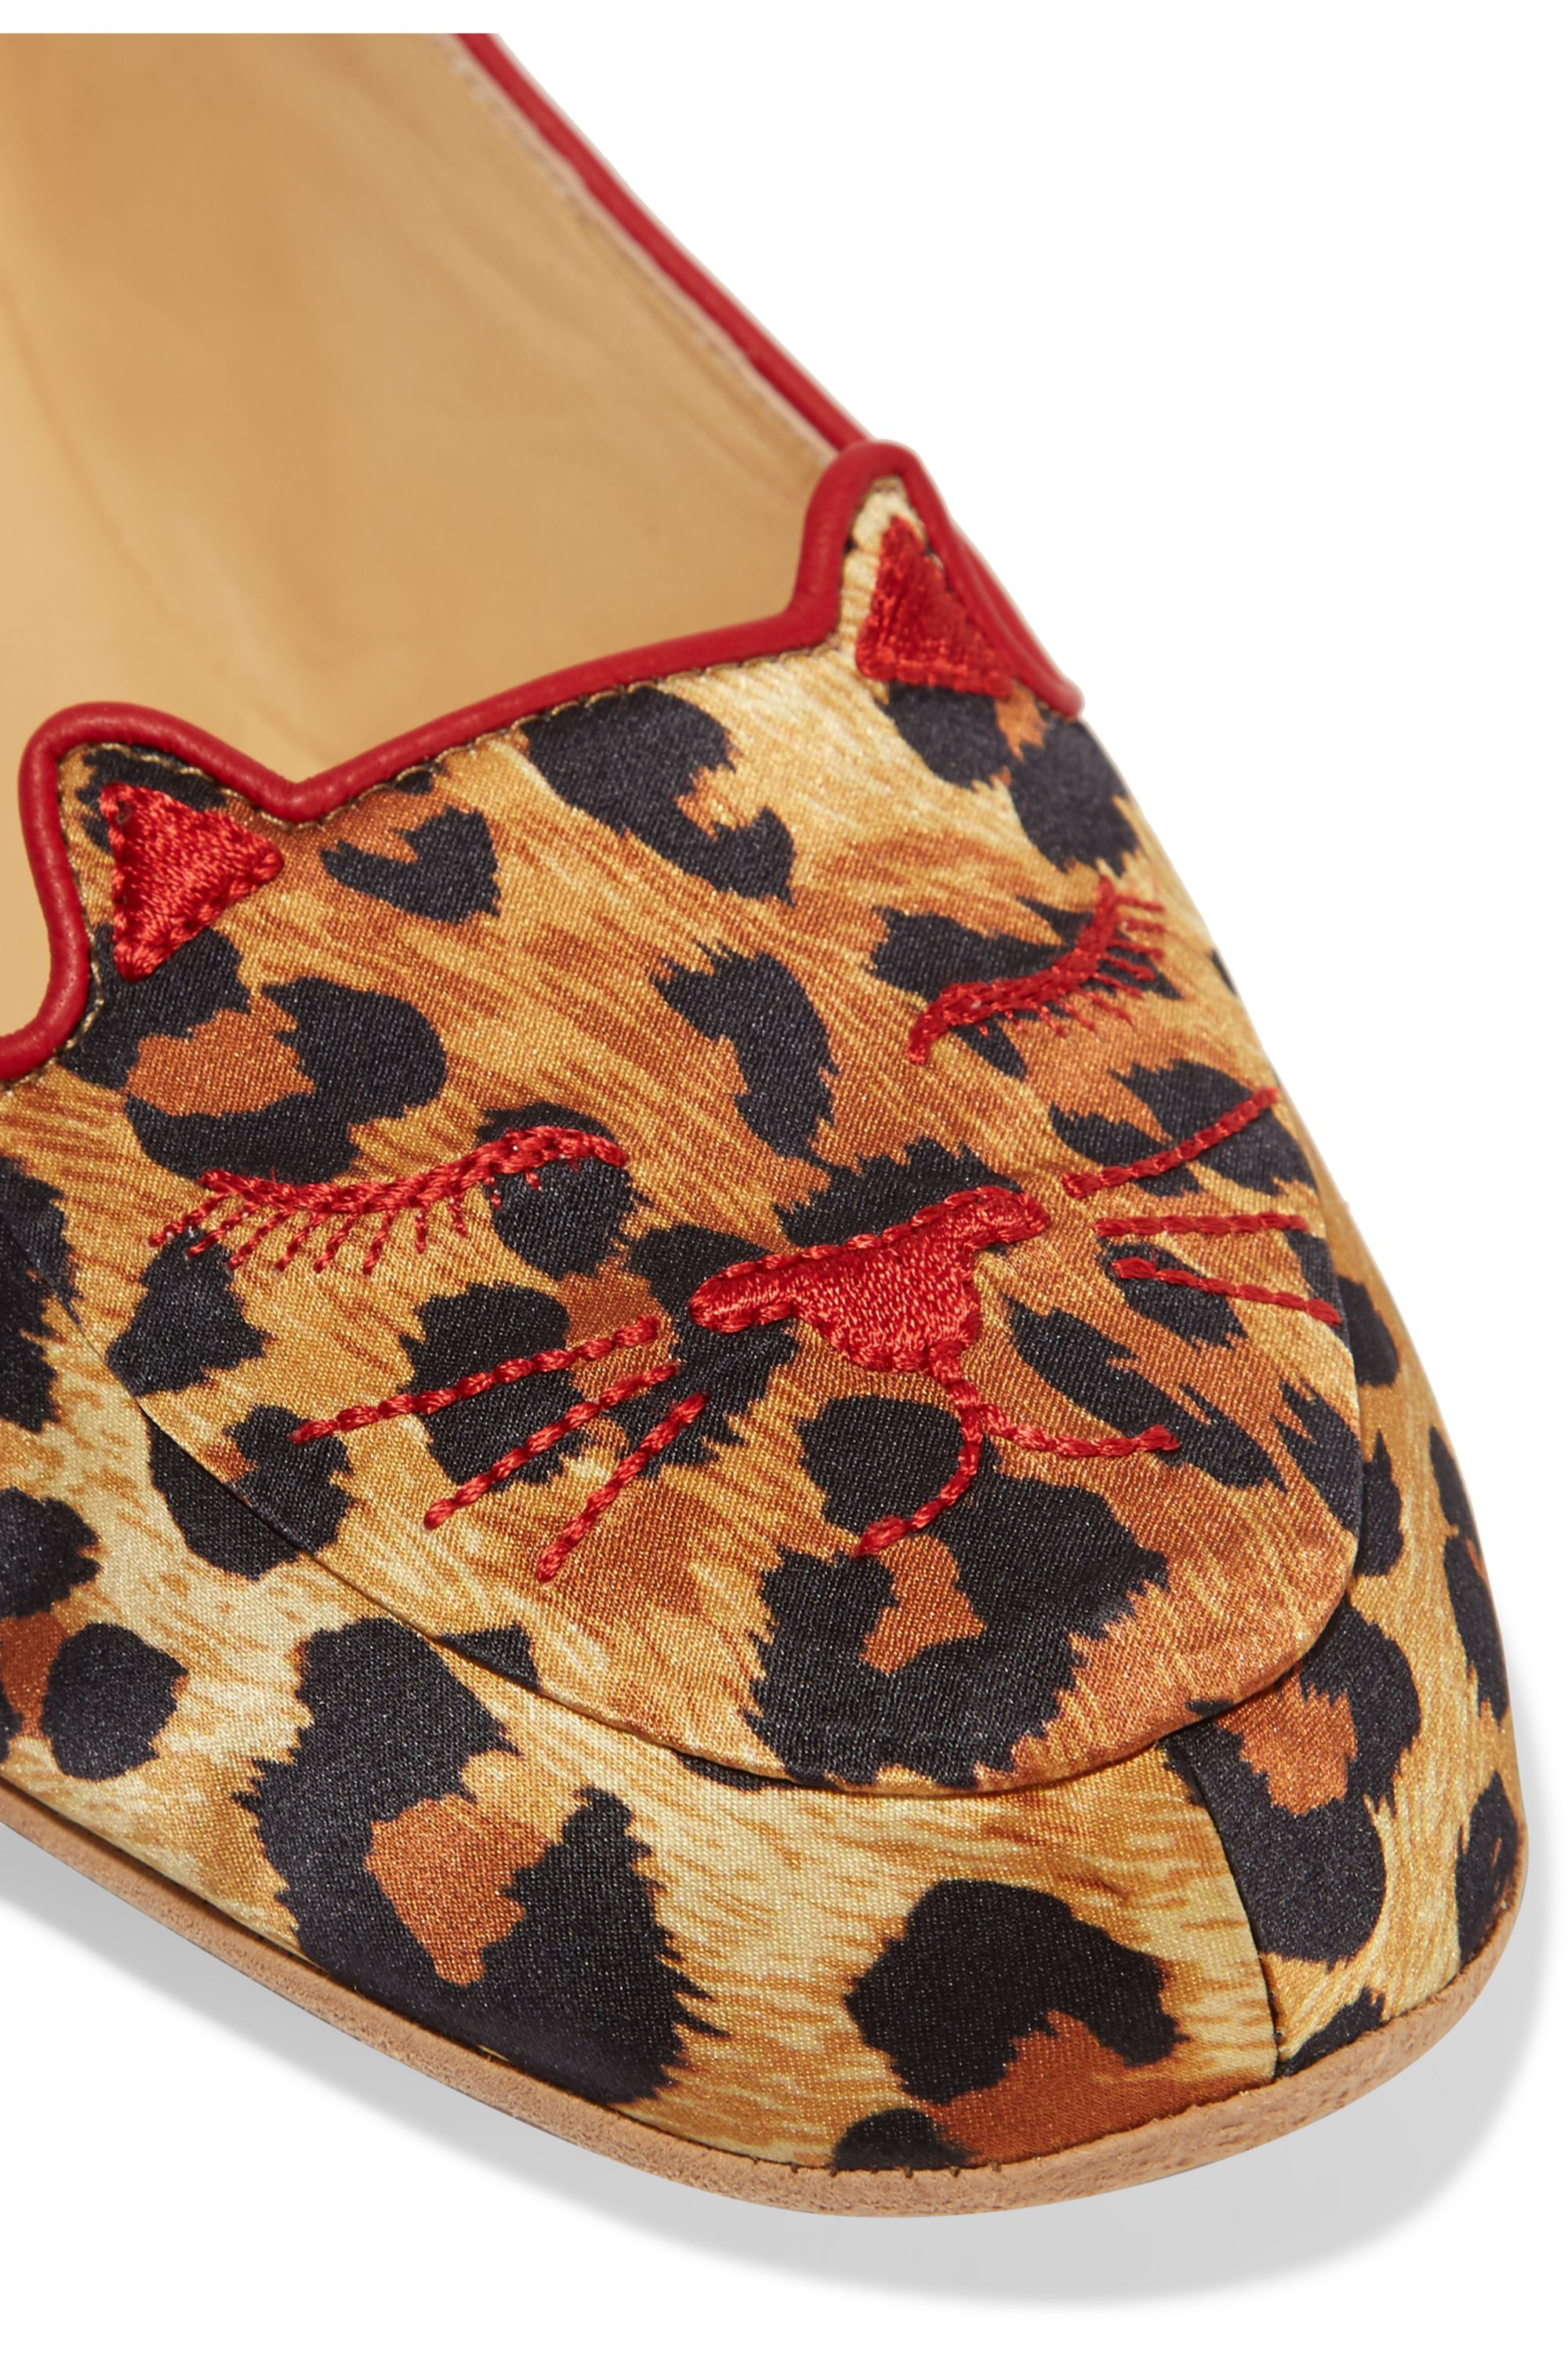 Charlotte Olympia + Agent Provocateur Wild Cat Naps embroidered satin slippers